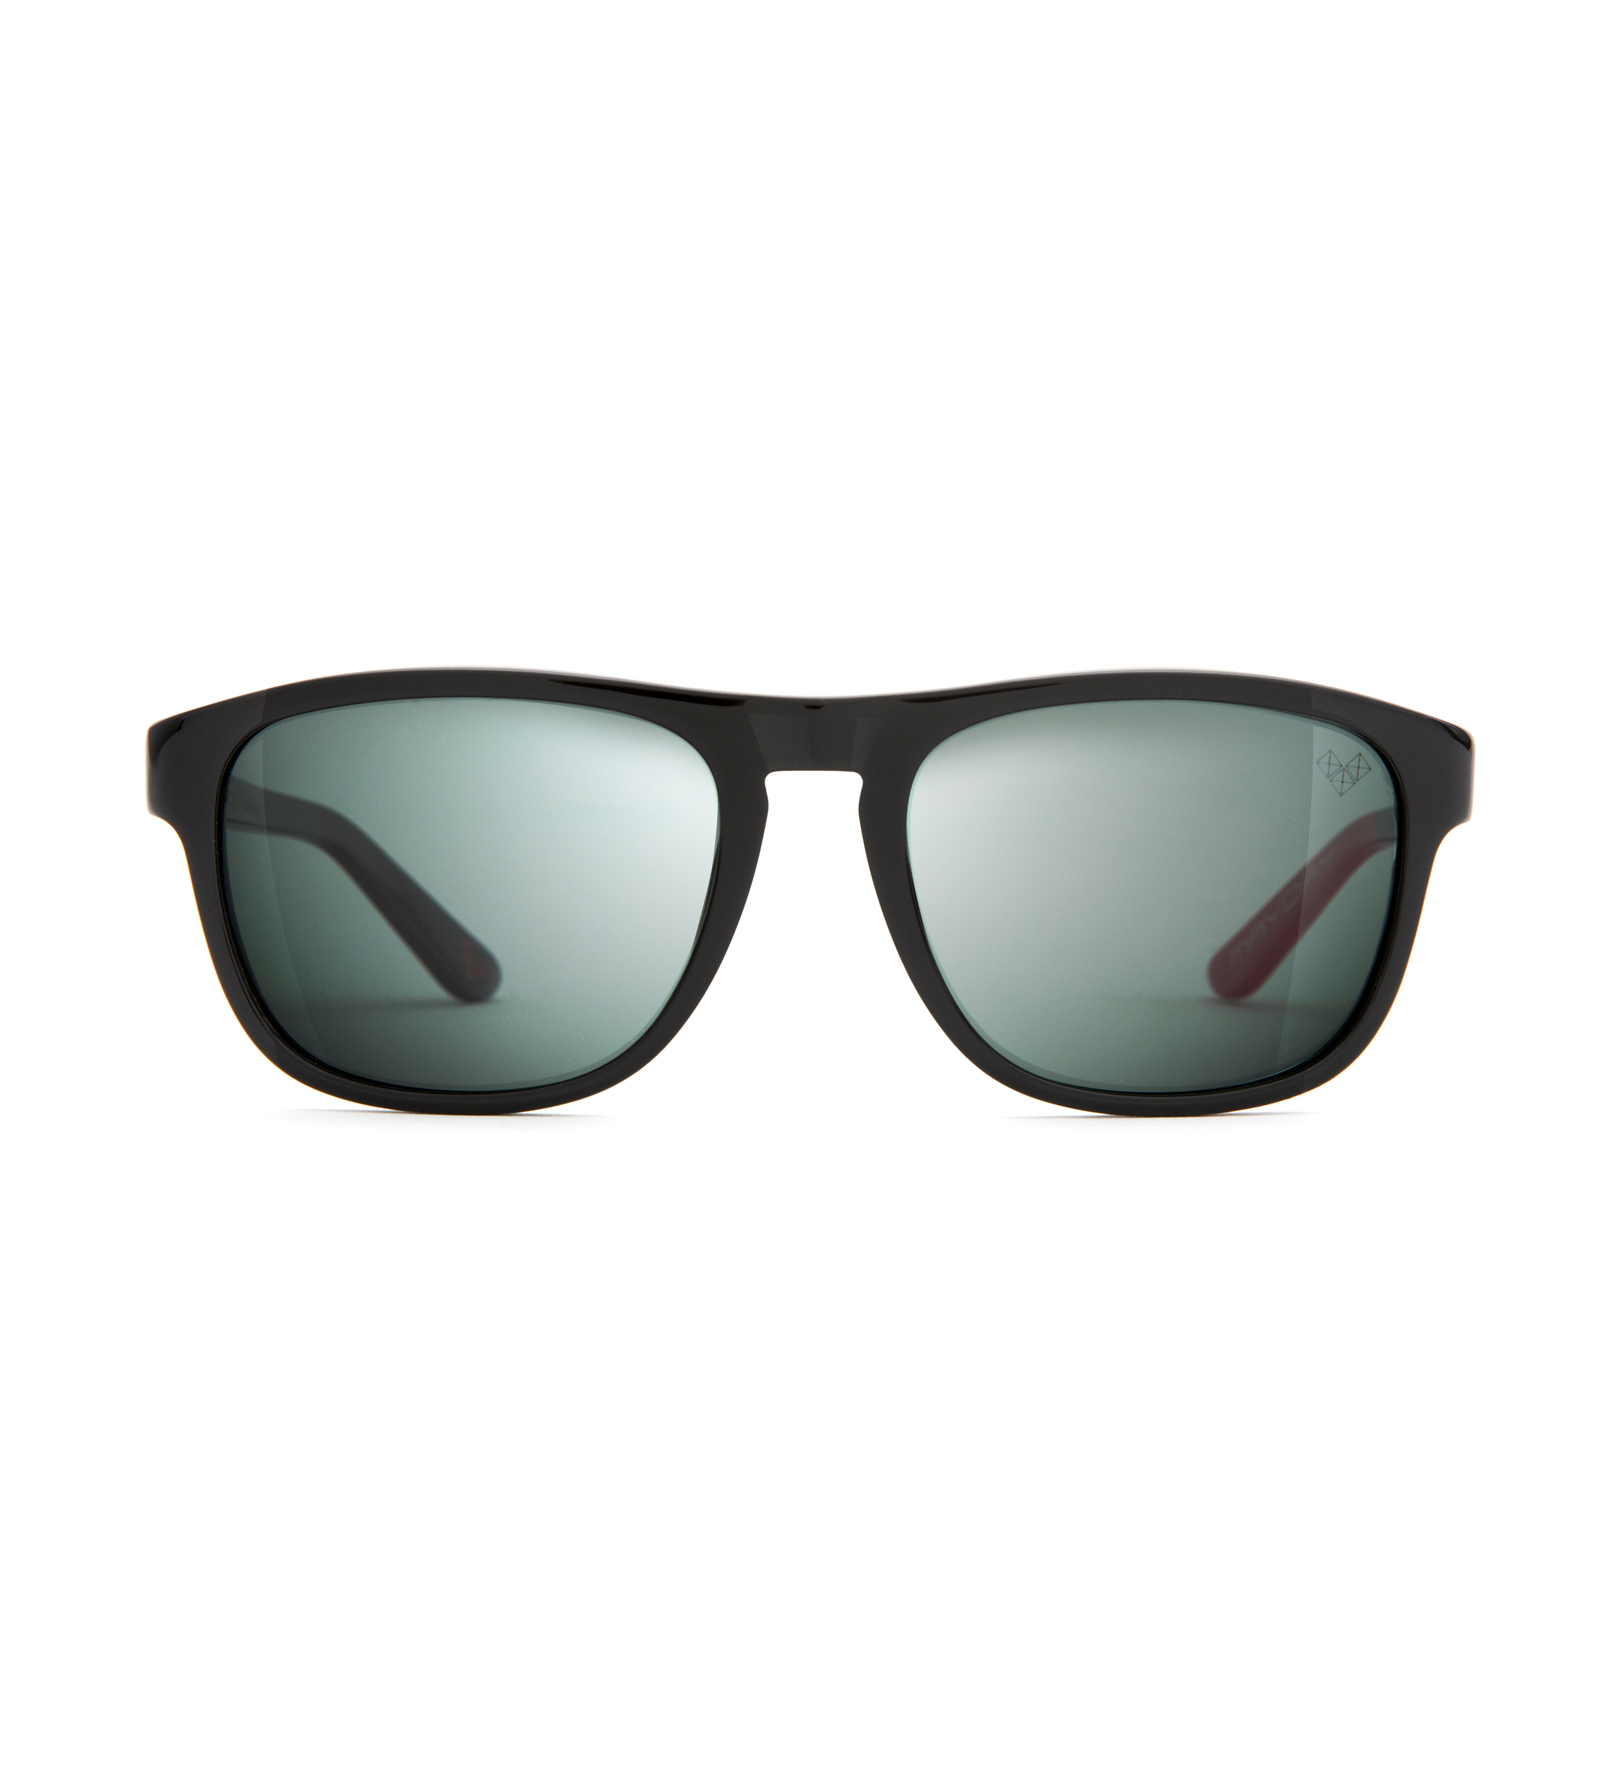 MAYDAY-Md5GR-P with Grey Polarized Lenses